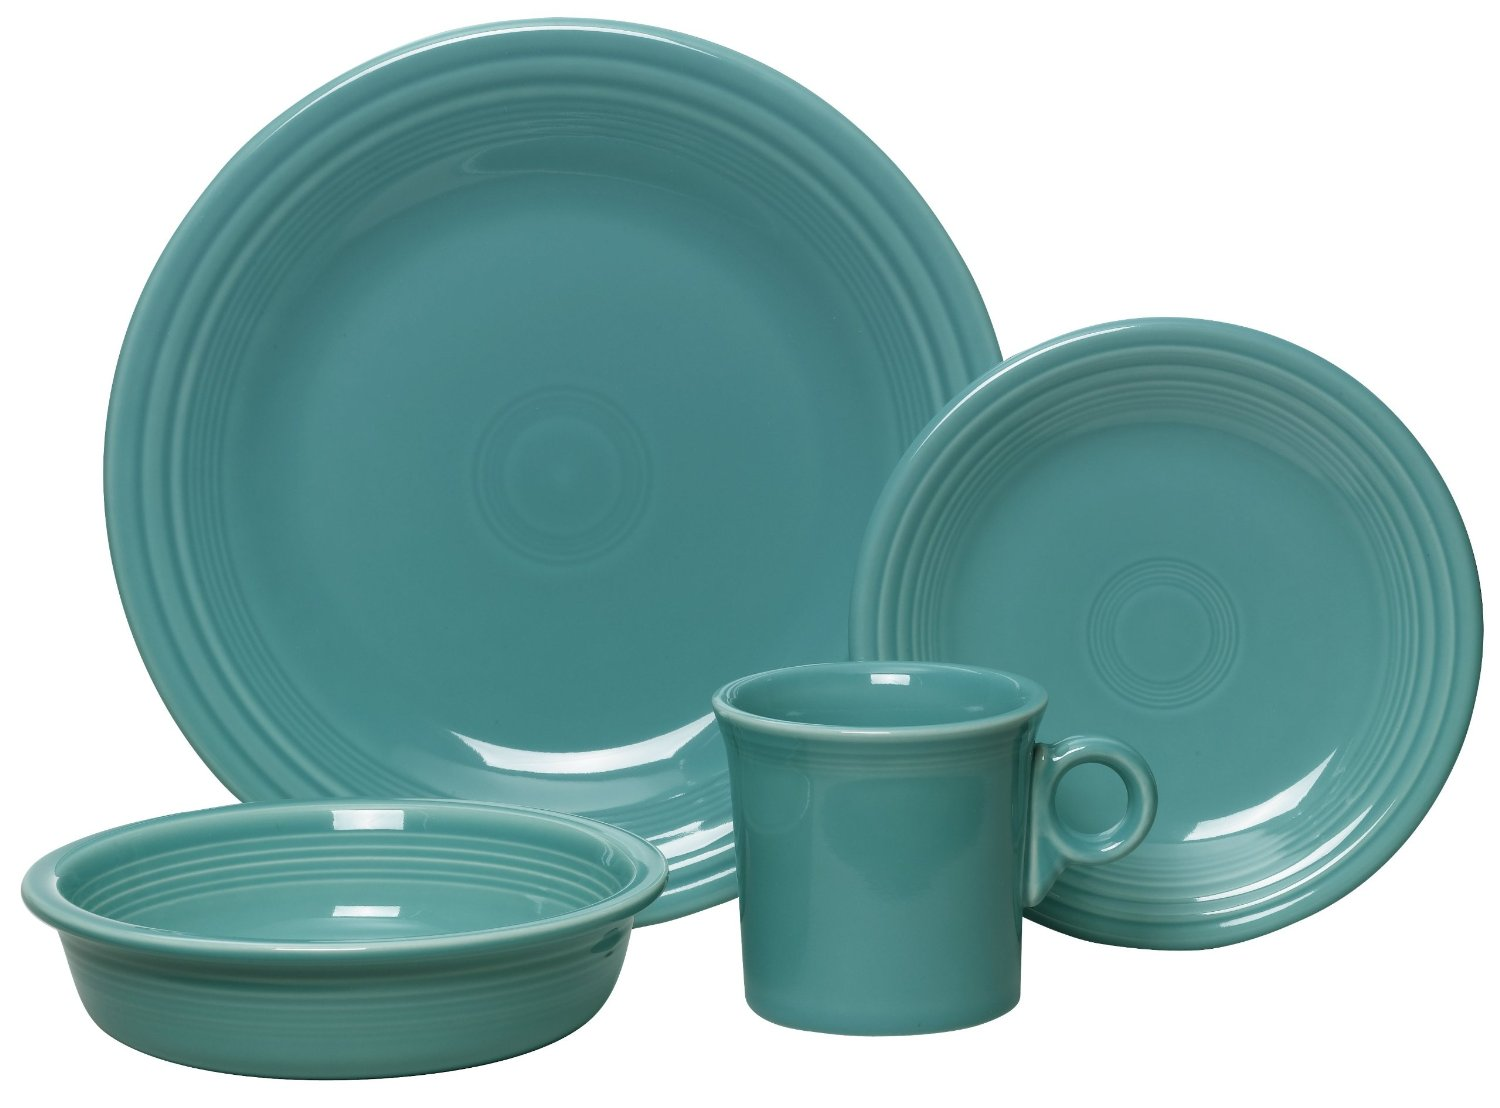 wonderful dinnerware set in turquoise theme by fiestaware for dinner ideas